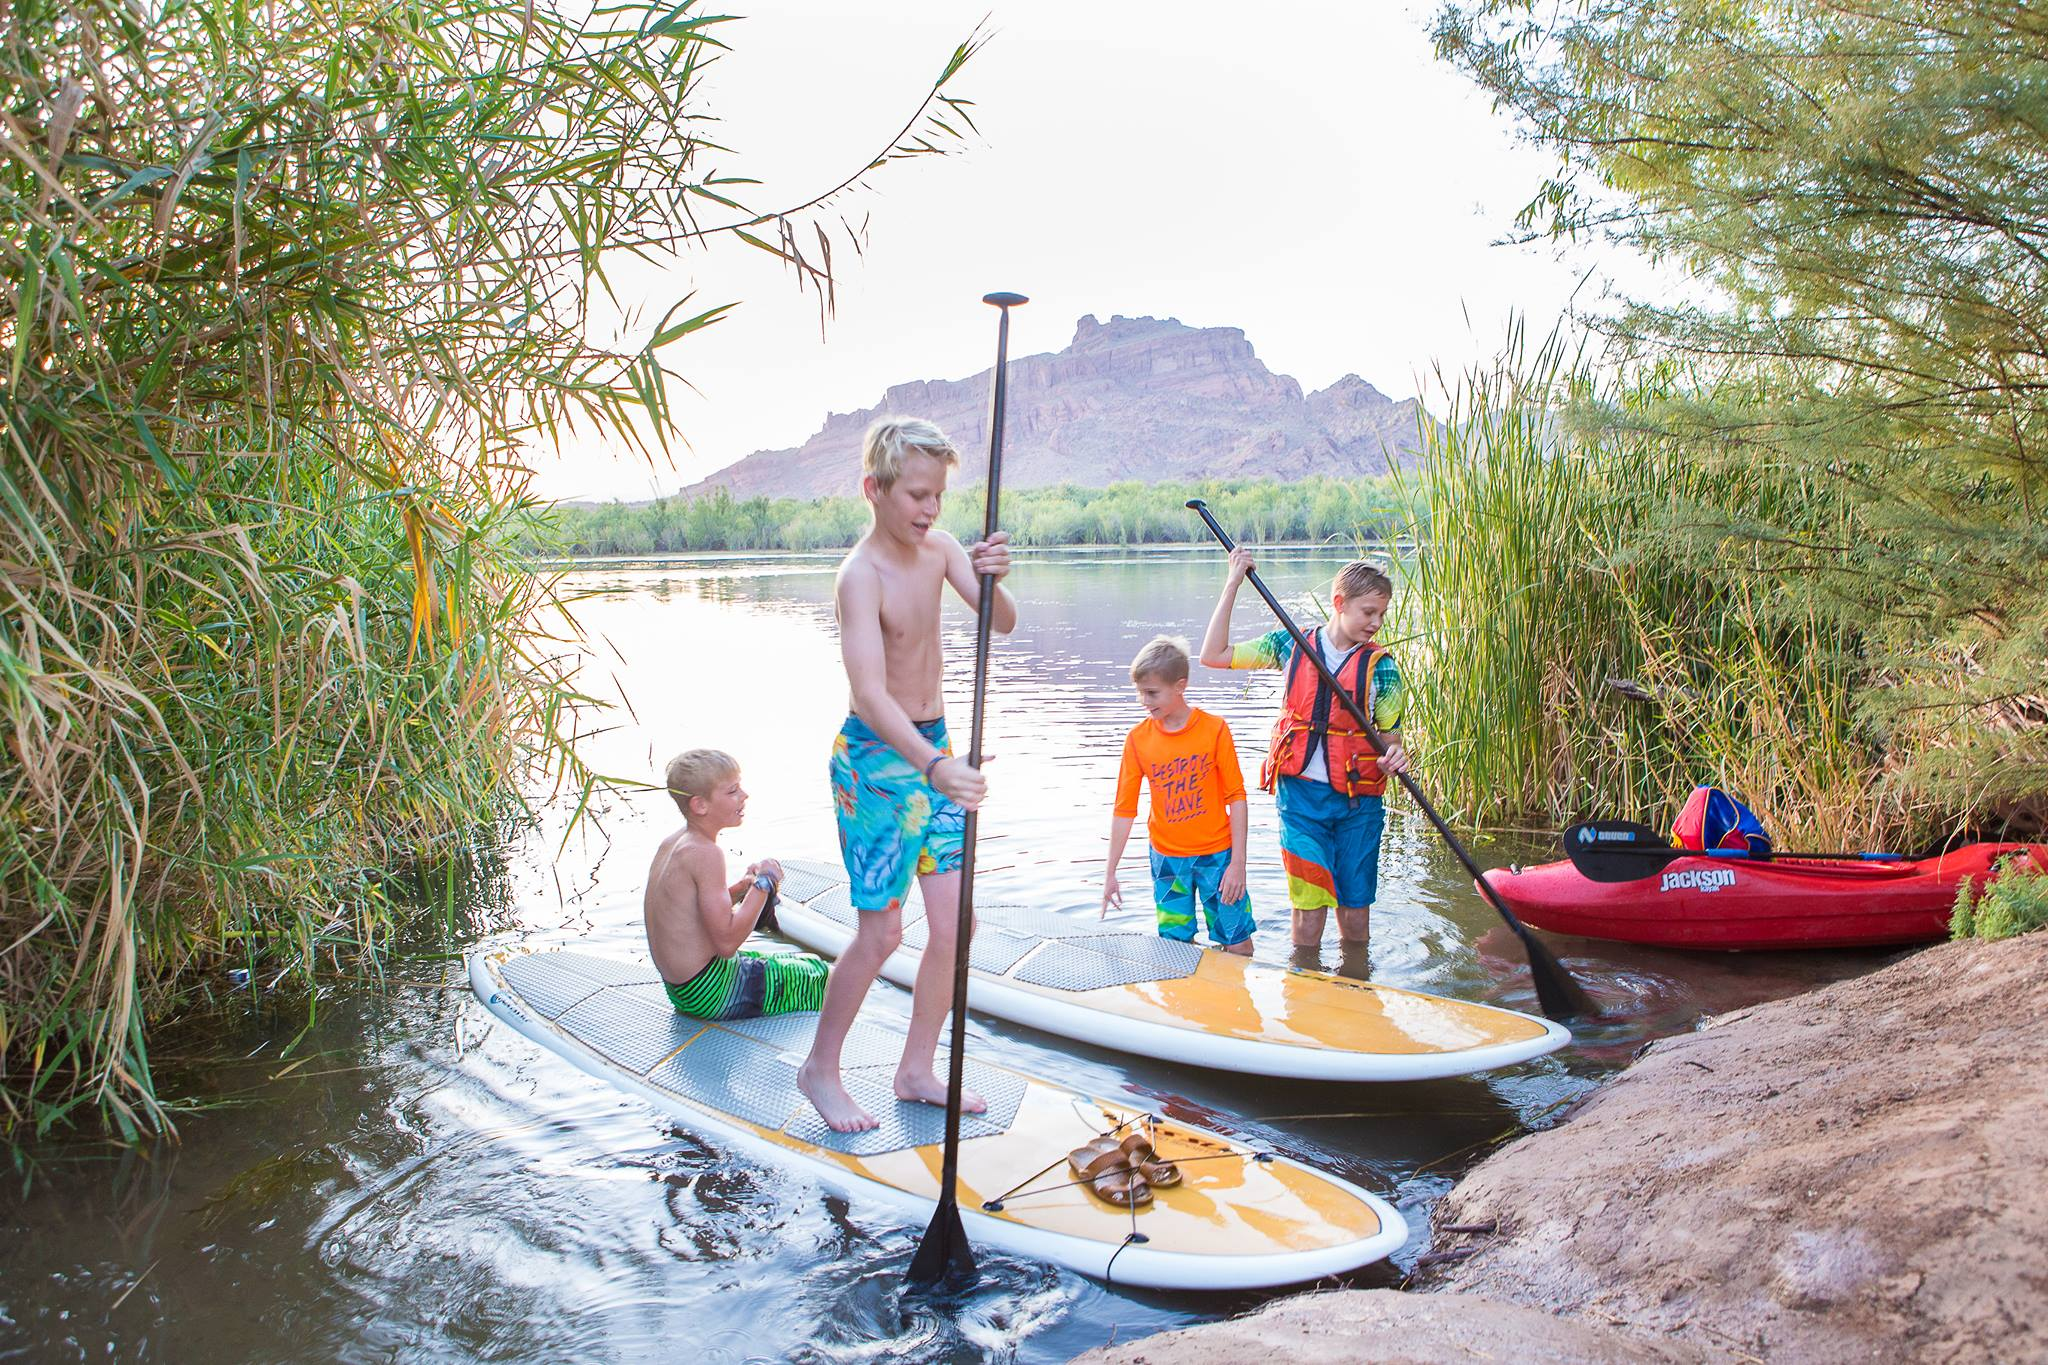 mesa_paddle boarders